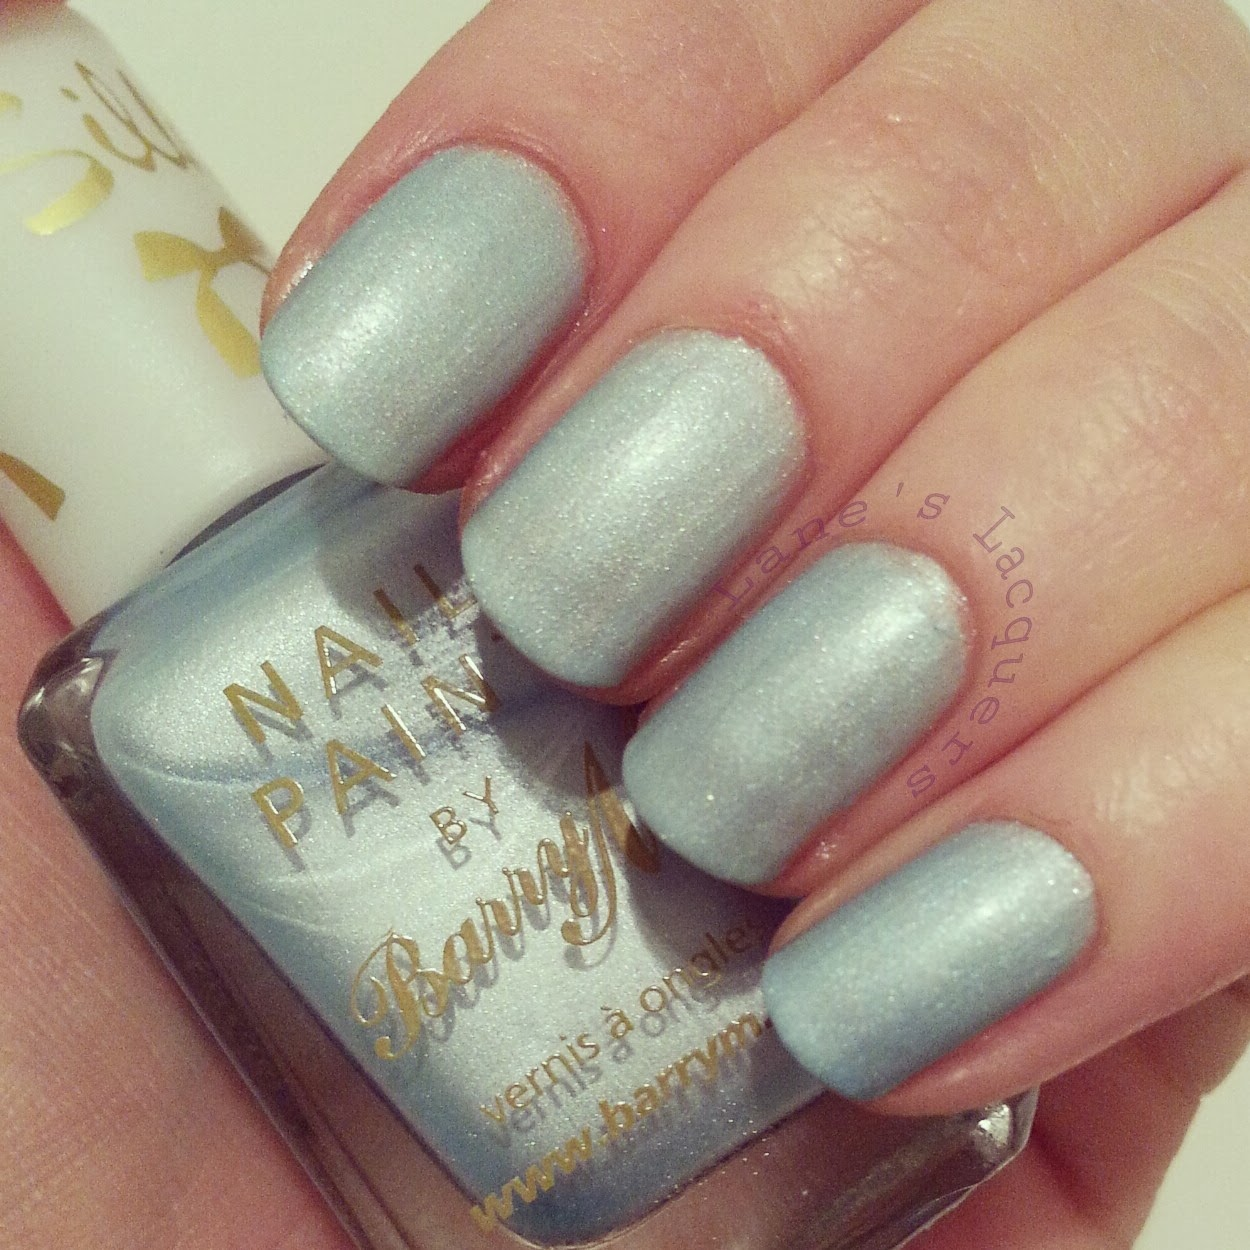 barry-m-silk-mist-swatch-nails